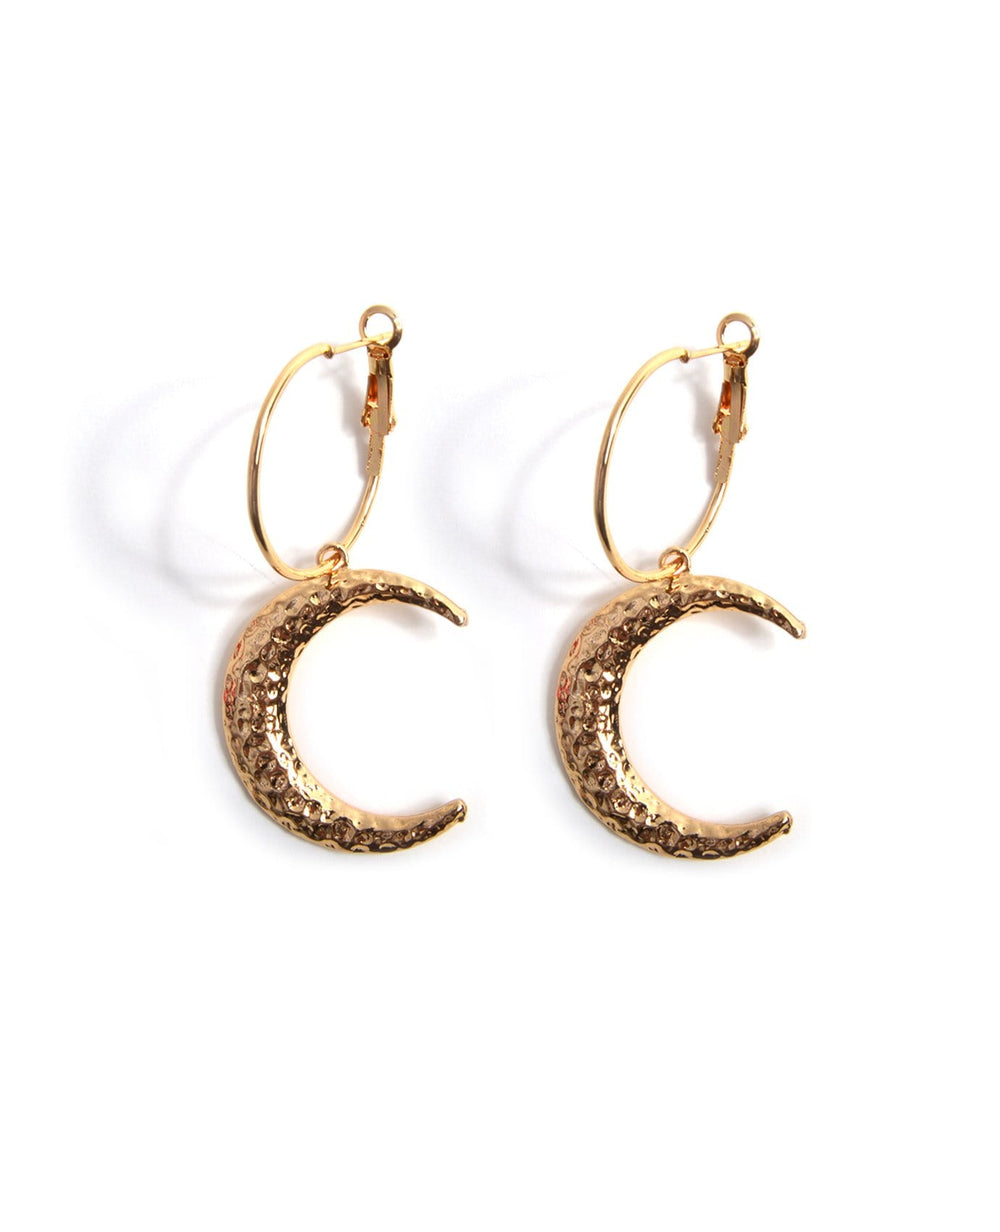 Good Night Earrings